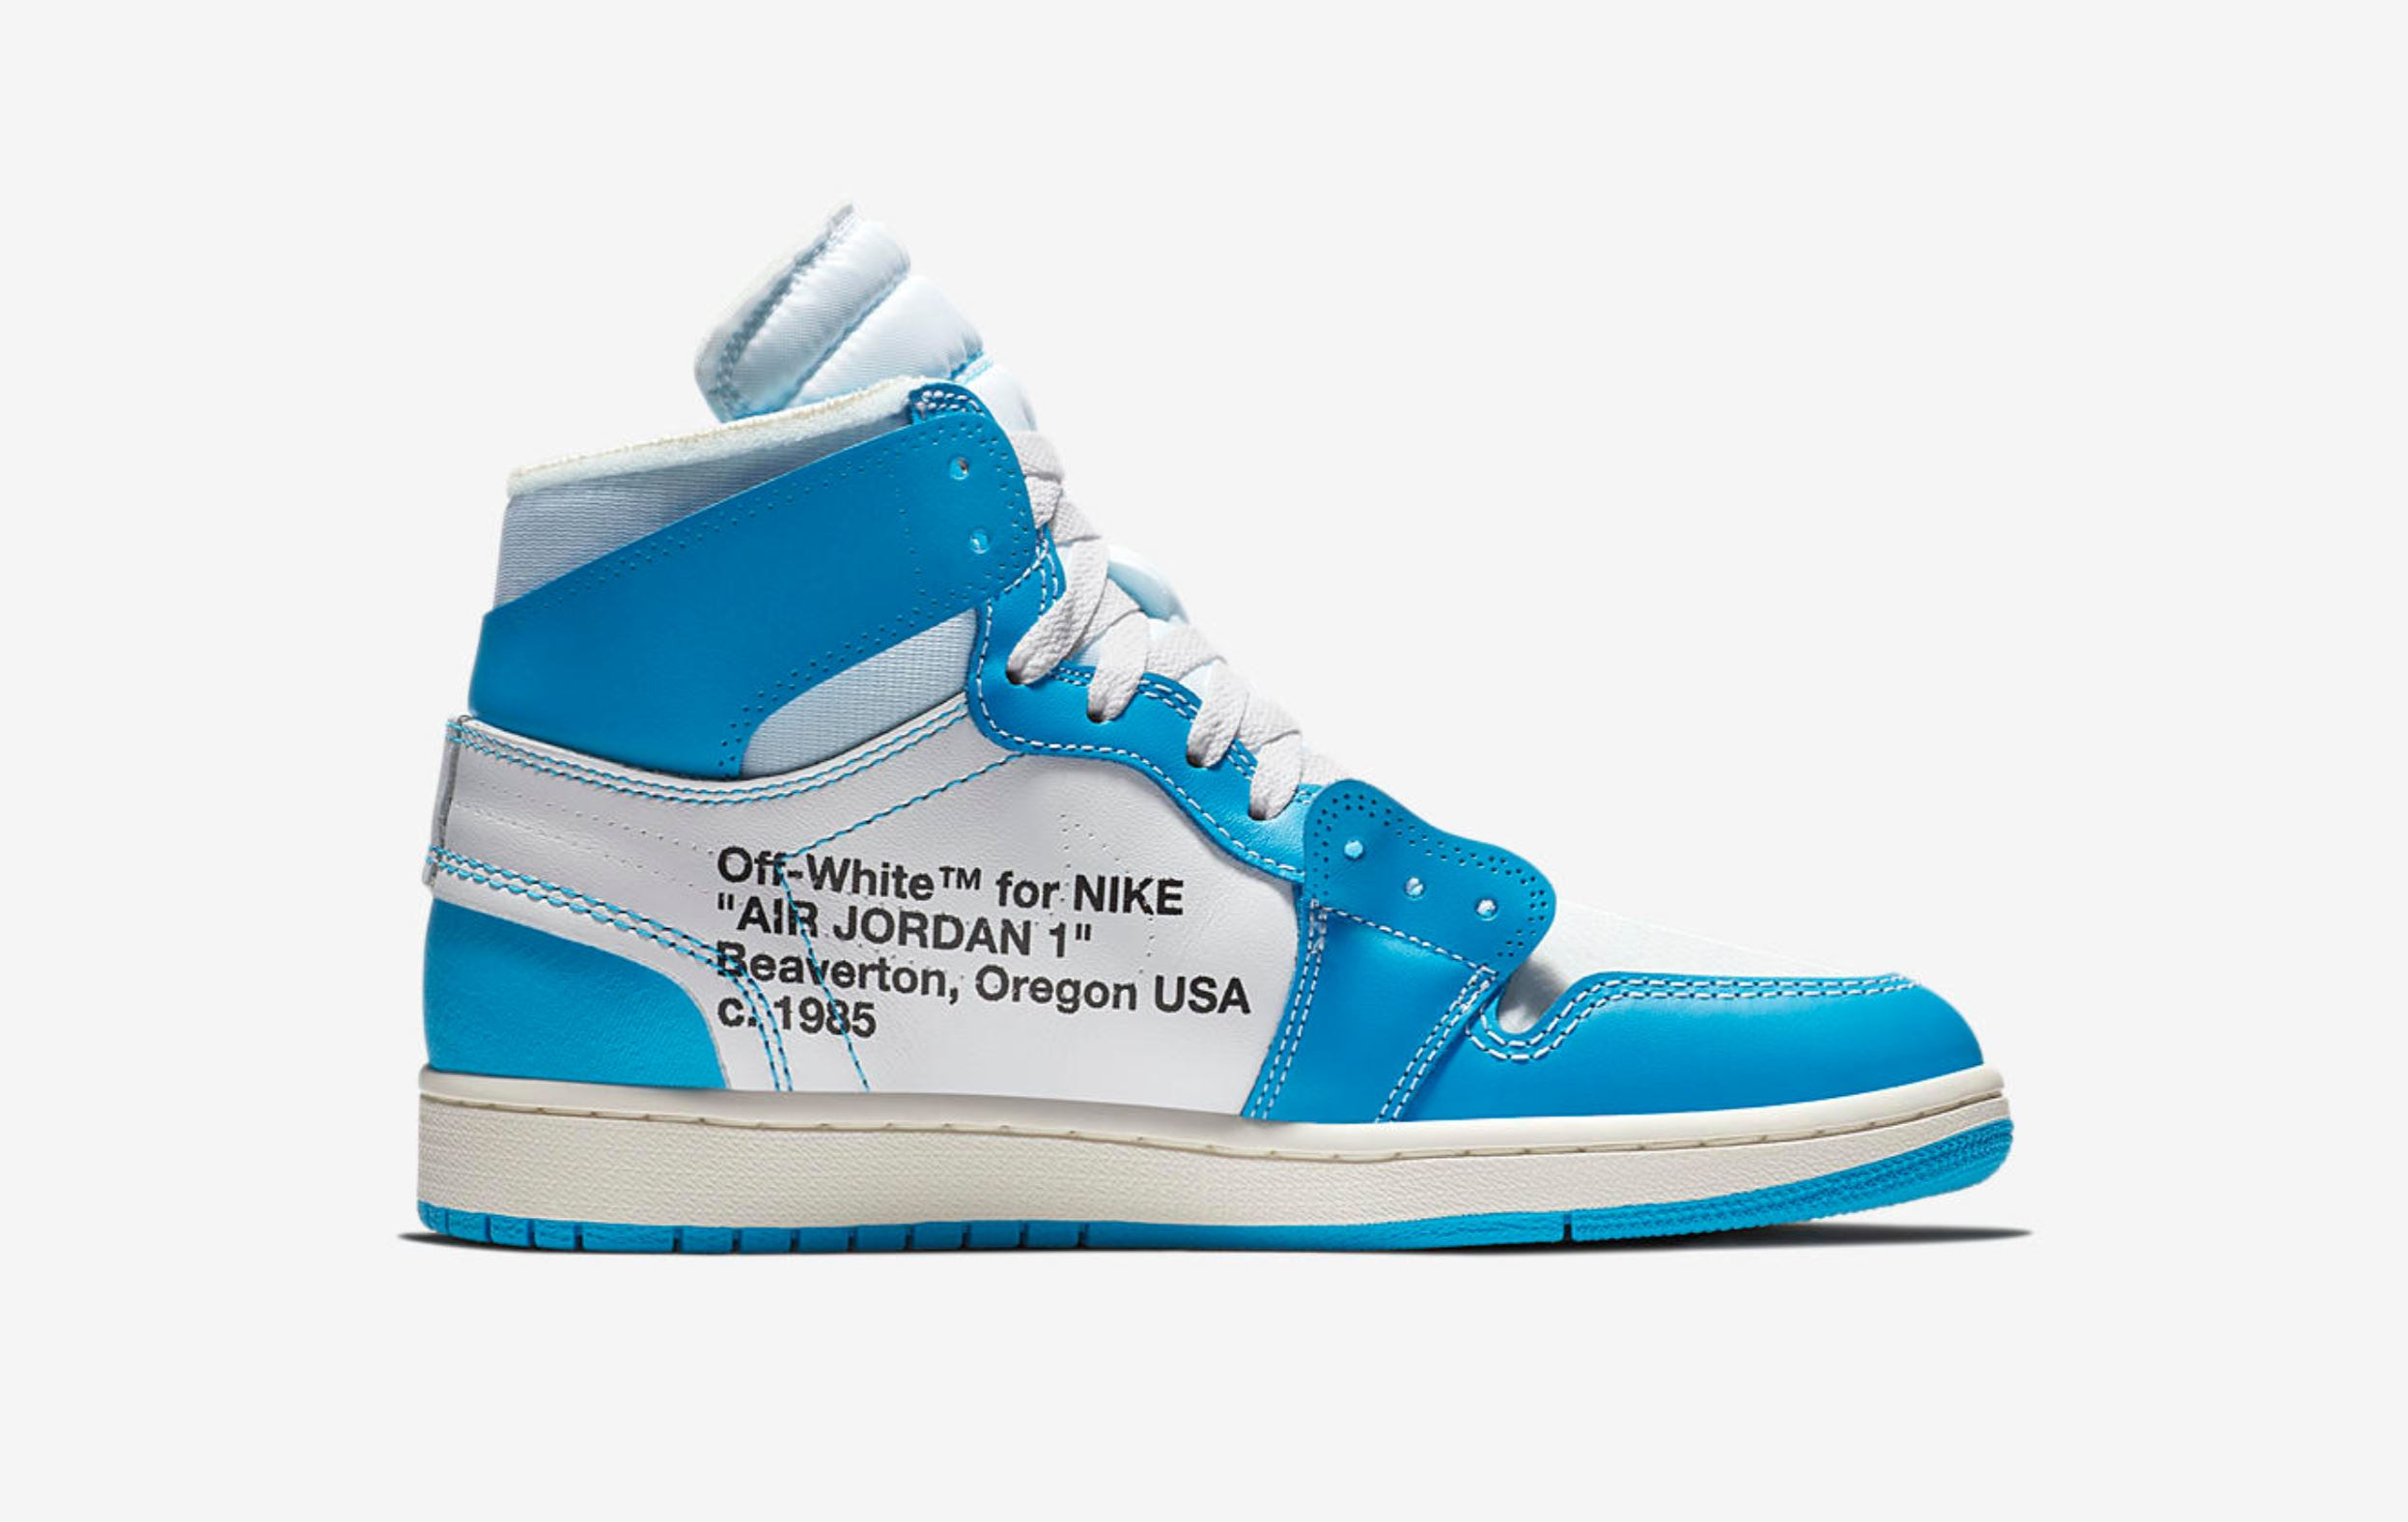 off white air jordan 1 unc release 2